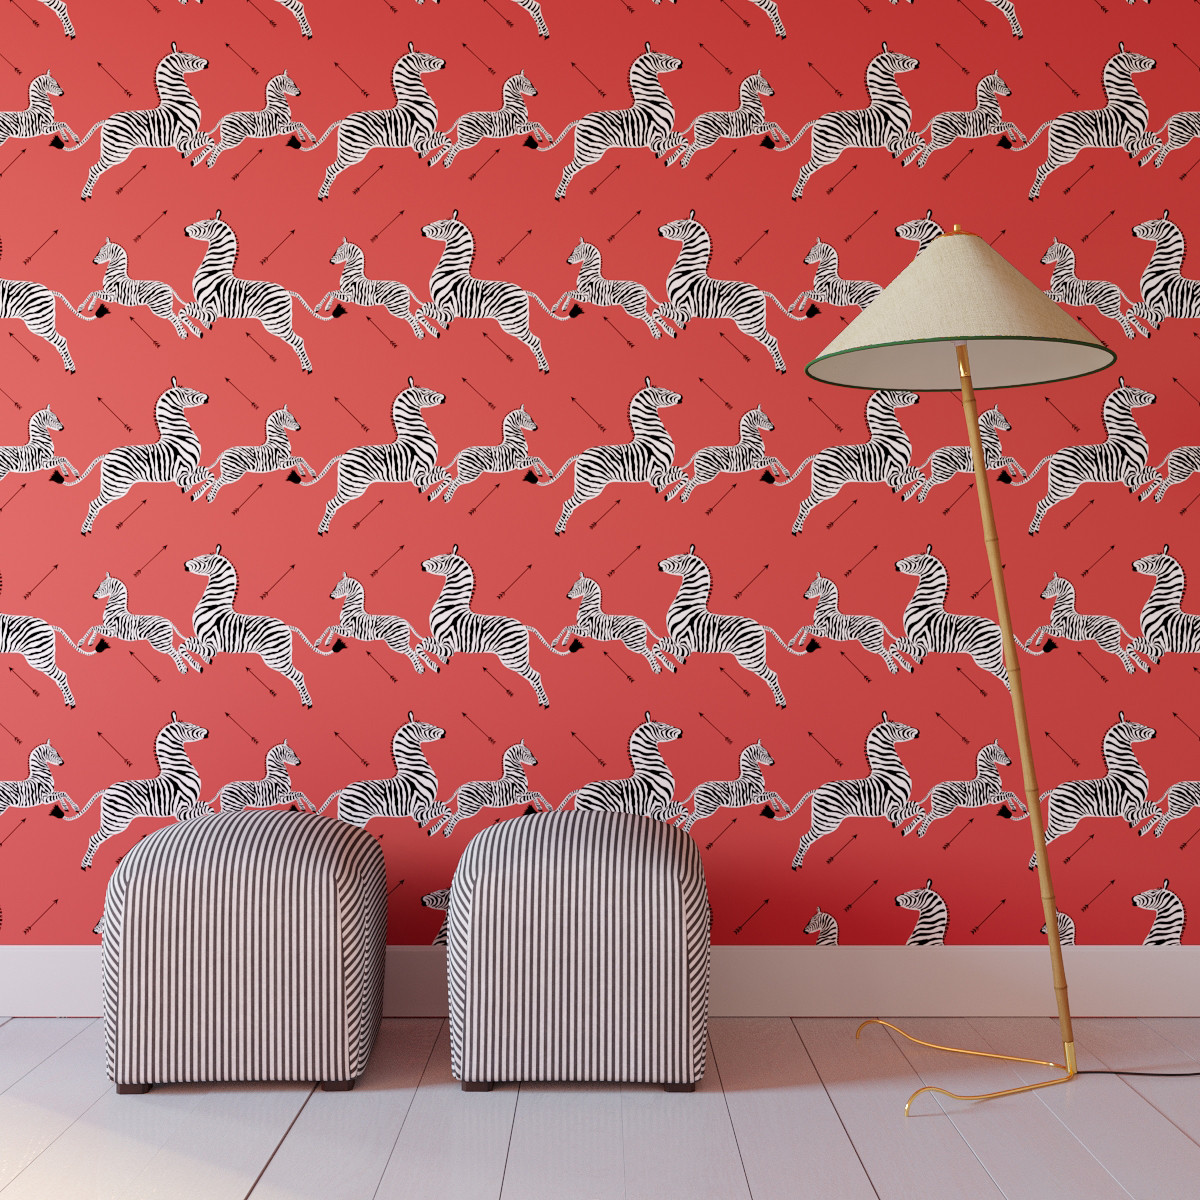 These Removable Wallpapers Are The Best No Risk Design Move